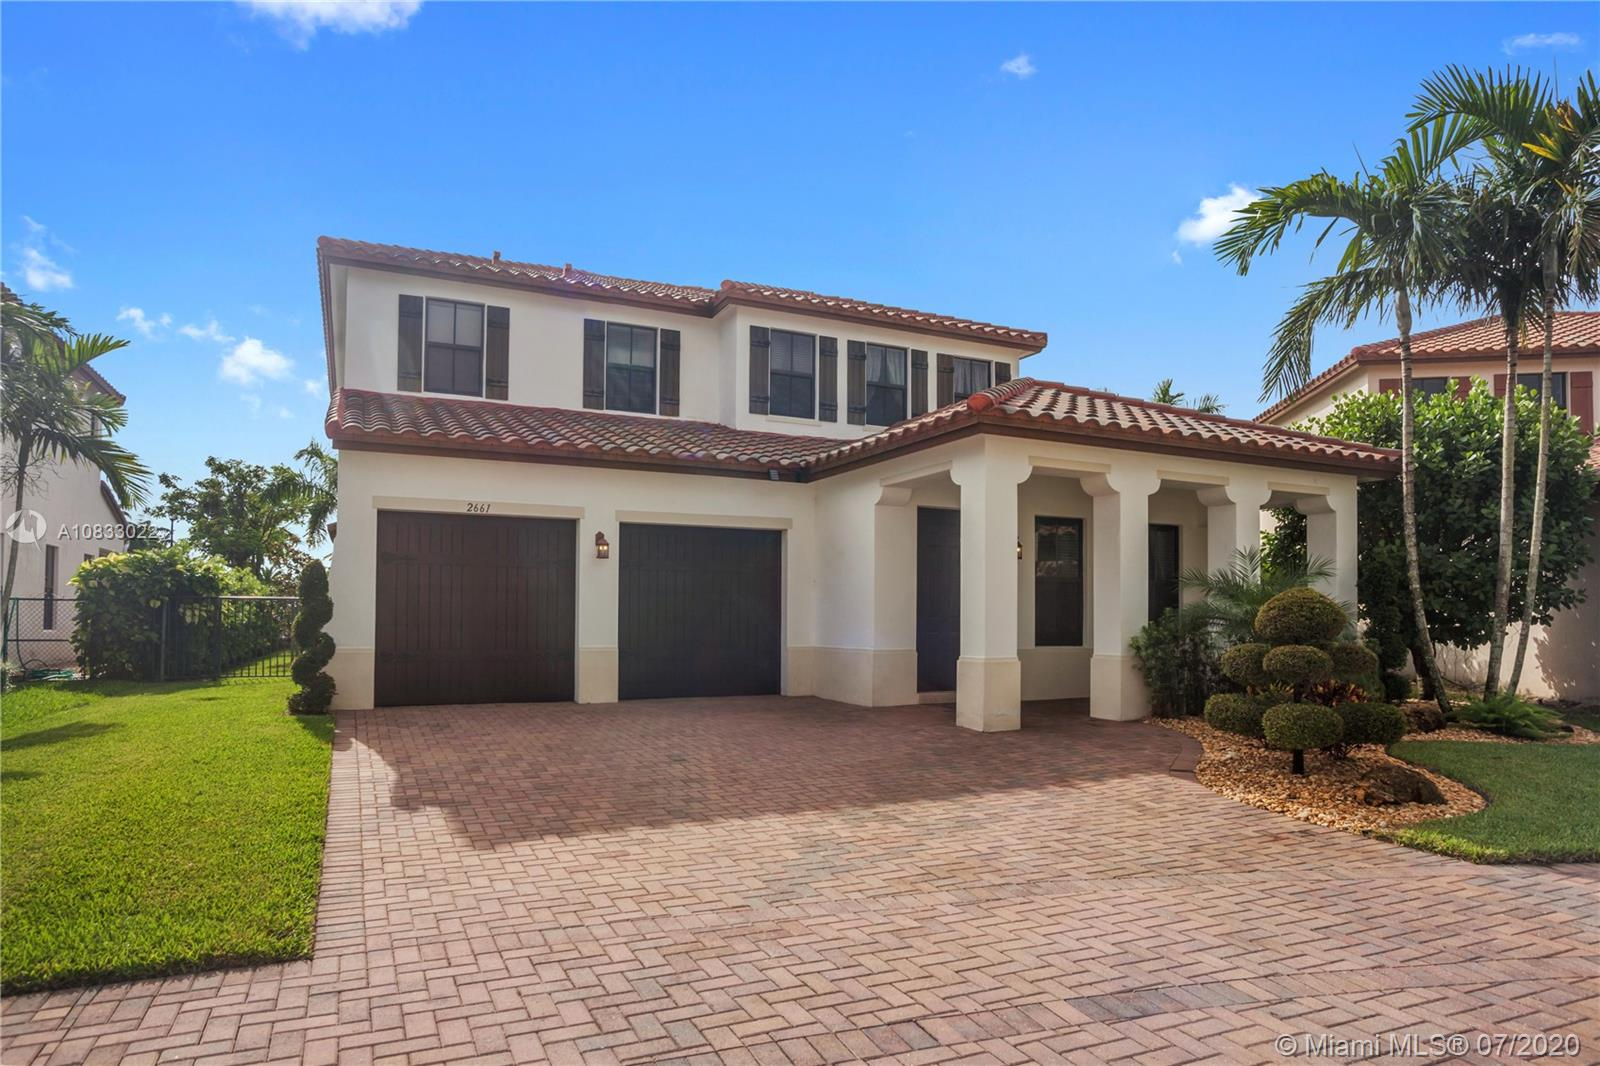 Property for sale at 2661 NW 83rd Ter, Cooper City,  Florida 33024